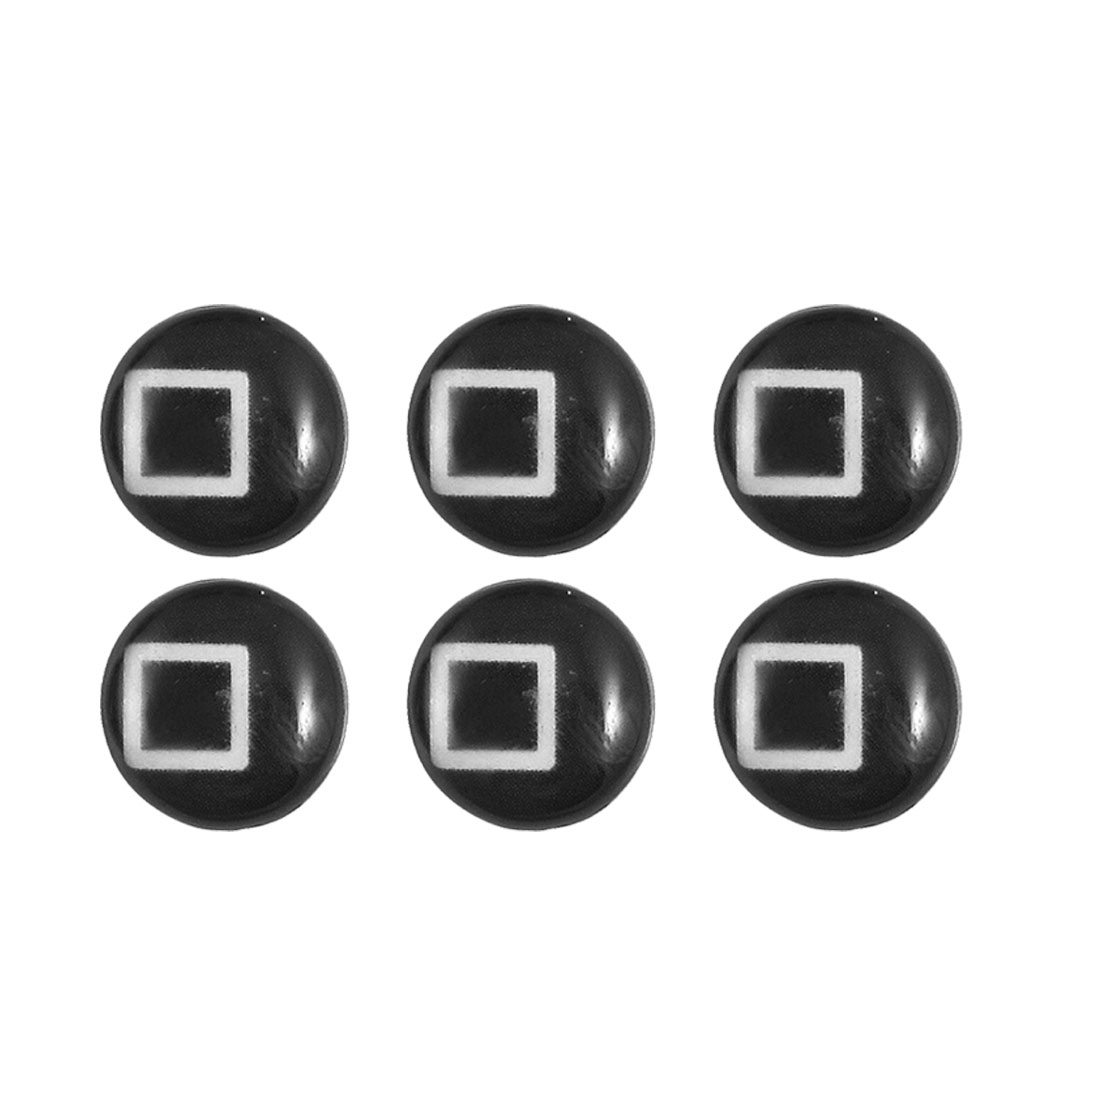 Black Square Design Home Button Stickers 6 in 1 for Cell Phone